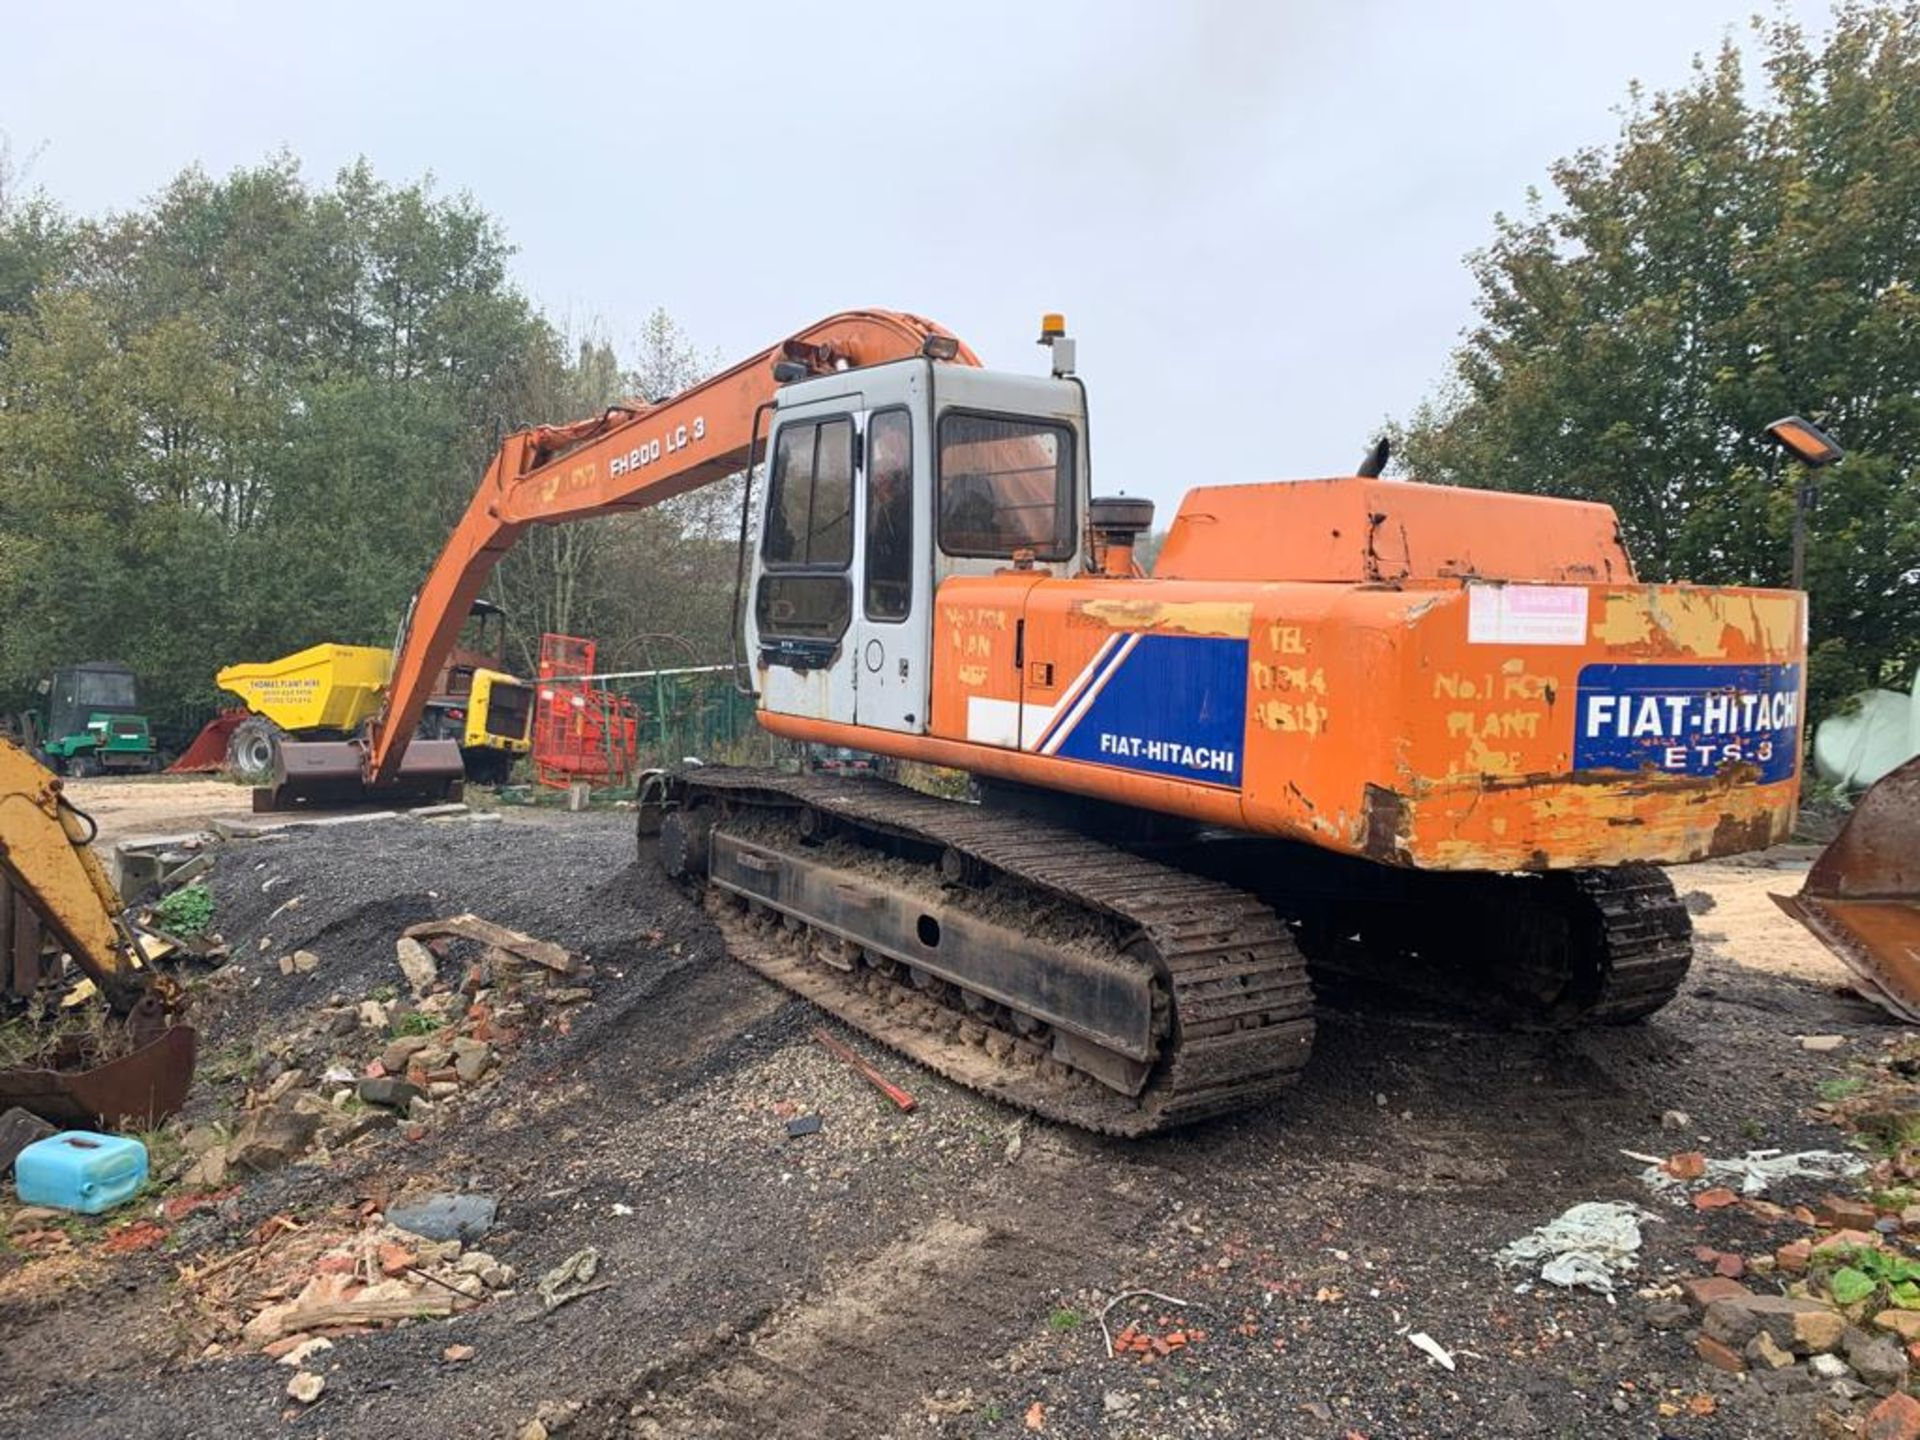 Lot 115 - FIAT HITACHI FH200 LC-3, 20 TON TRACKED CRAWLER EXCAVATOR LONG ARM / REACH, RUNS, WORKS AND DIGS